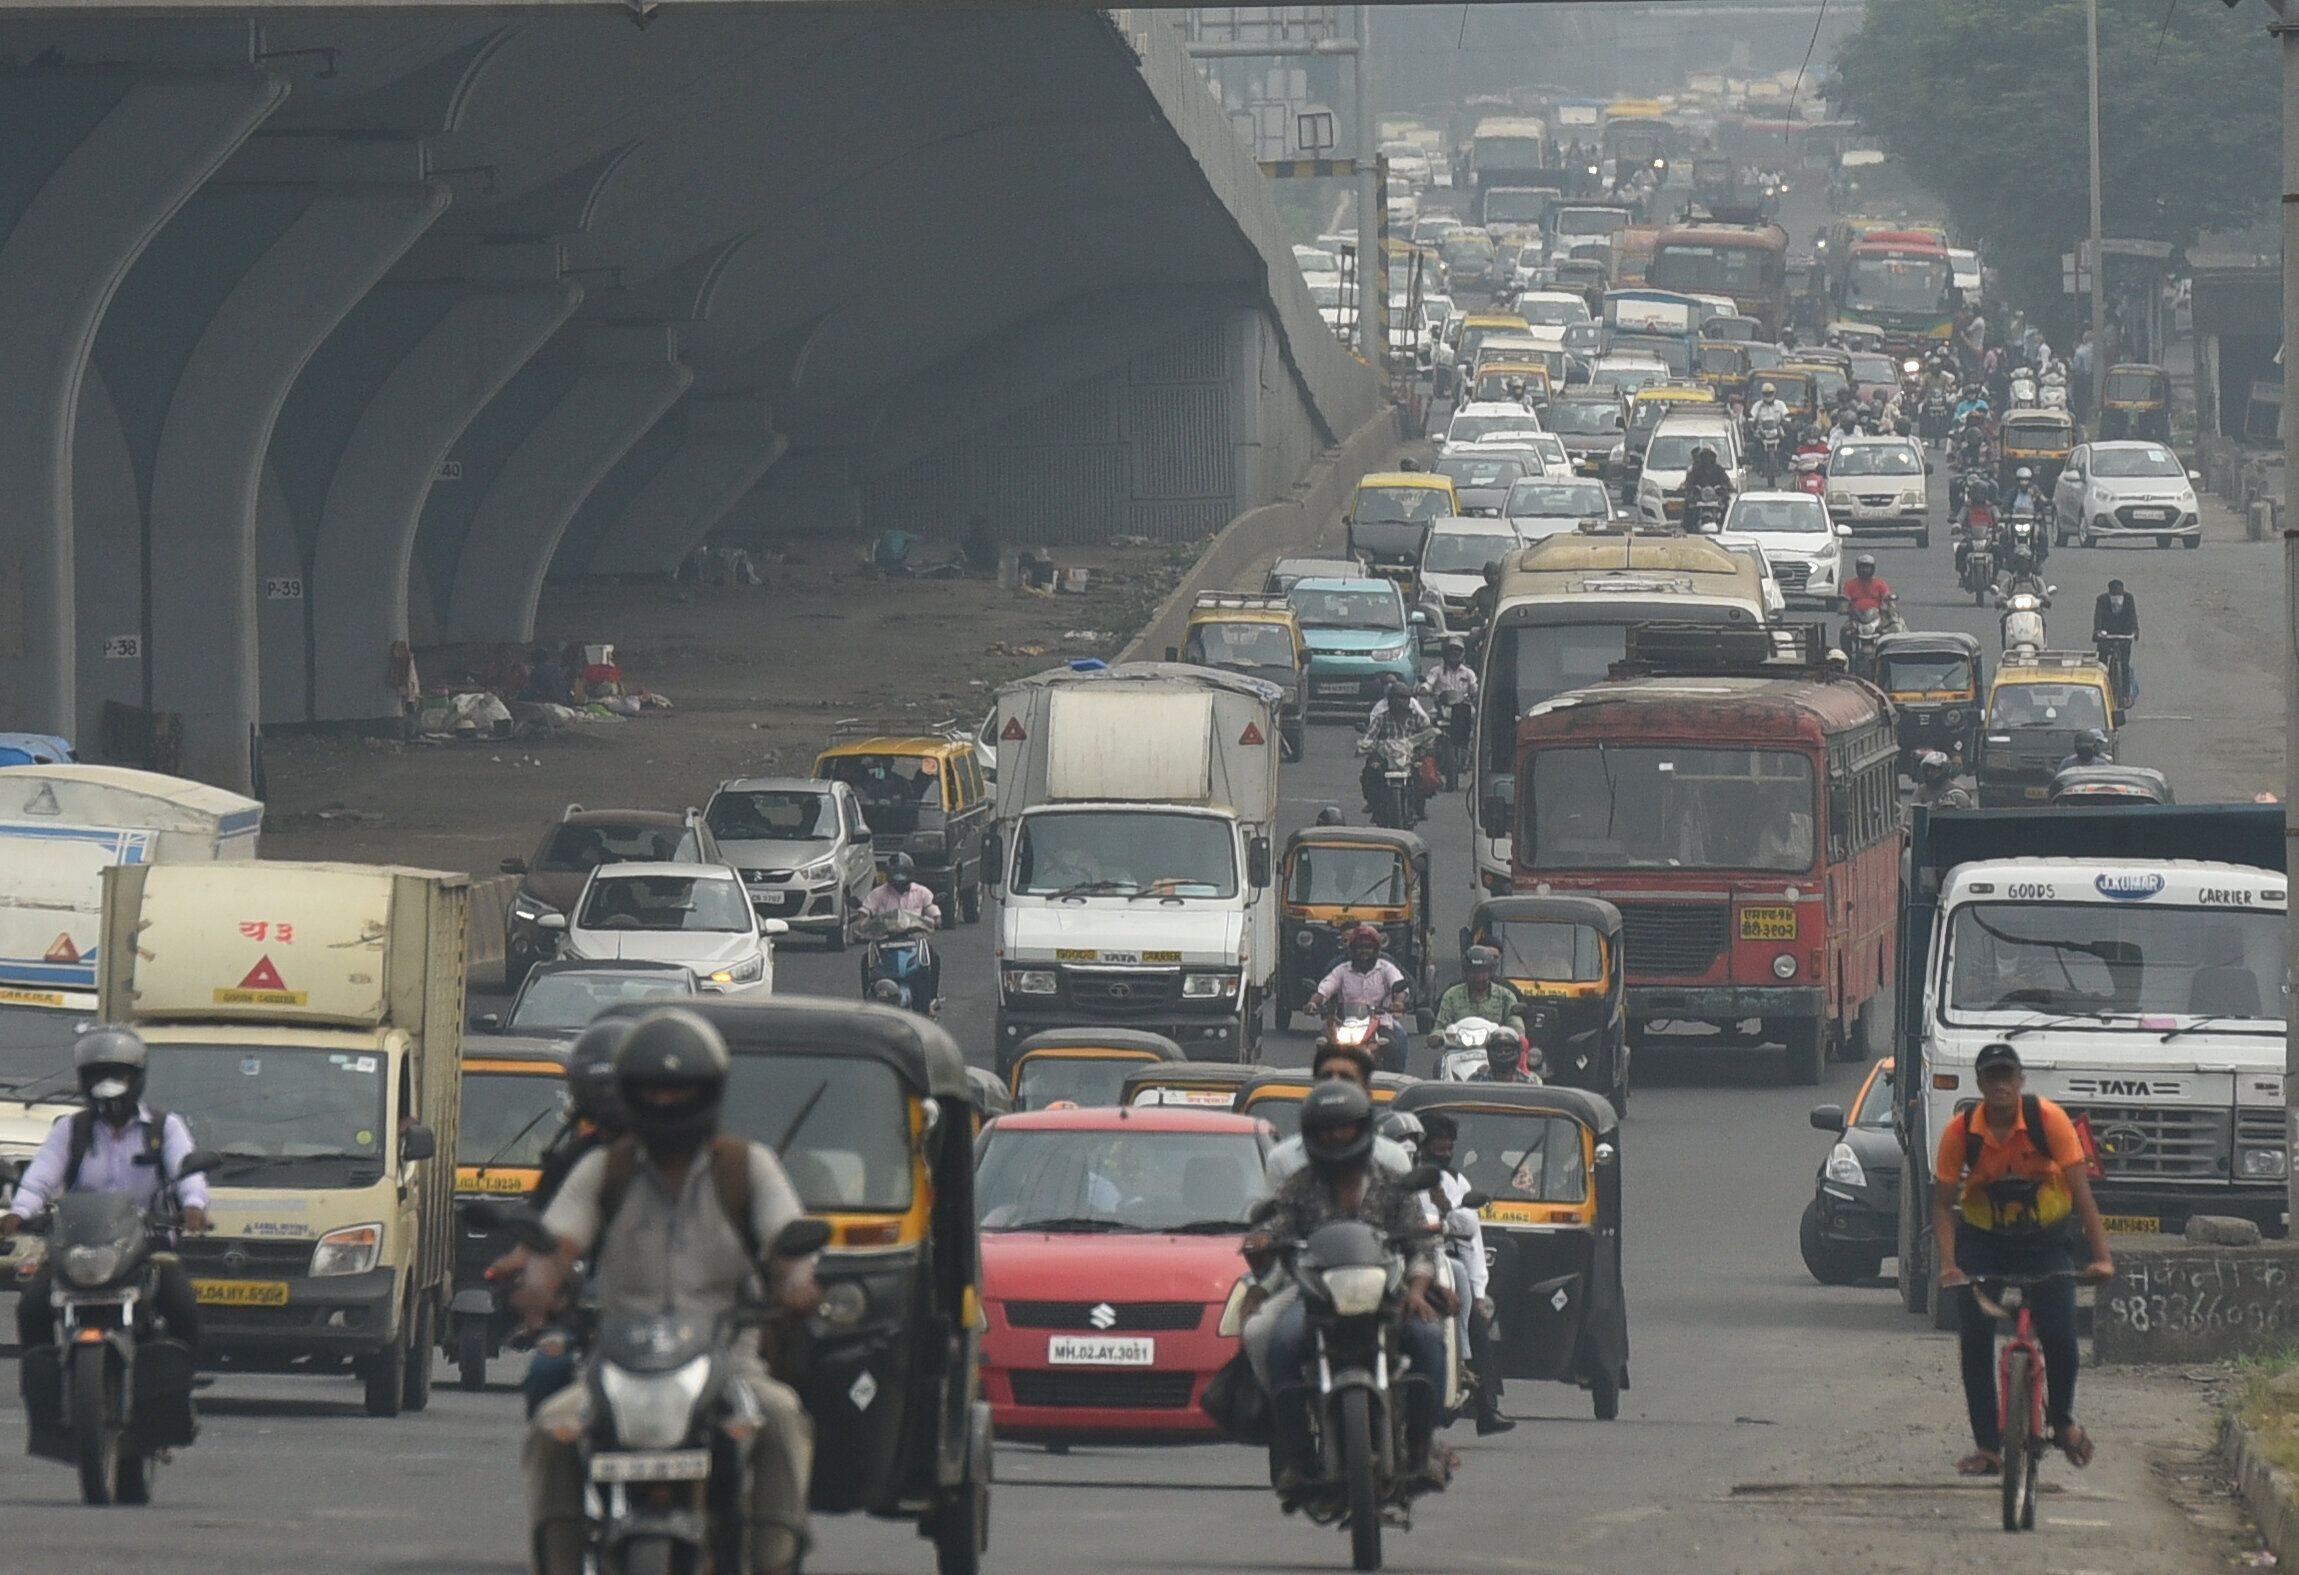 Huge traffic is seen in Mumbai, India, after local train services stopped due to a power failure, Oct. 12, 2020.